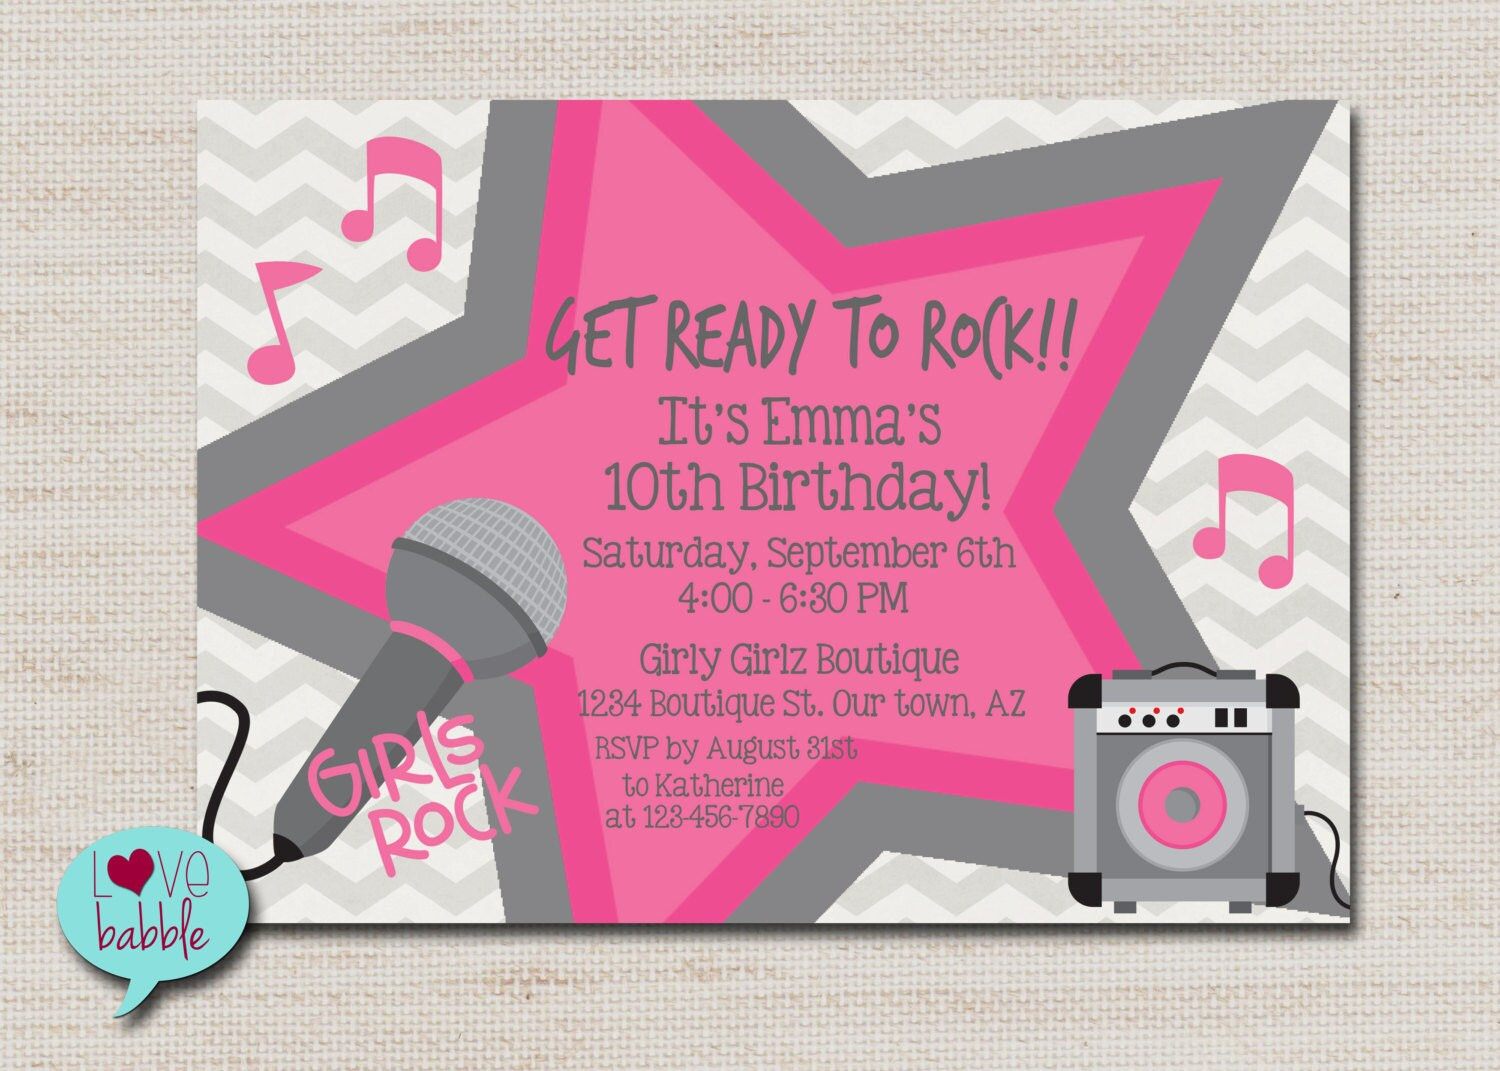 Rock star party karaoke party super star party invitation